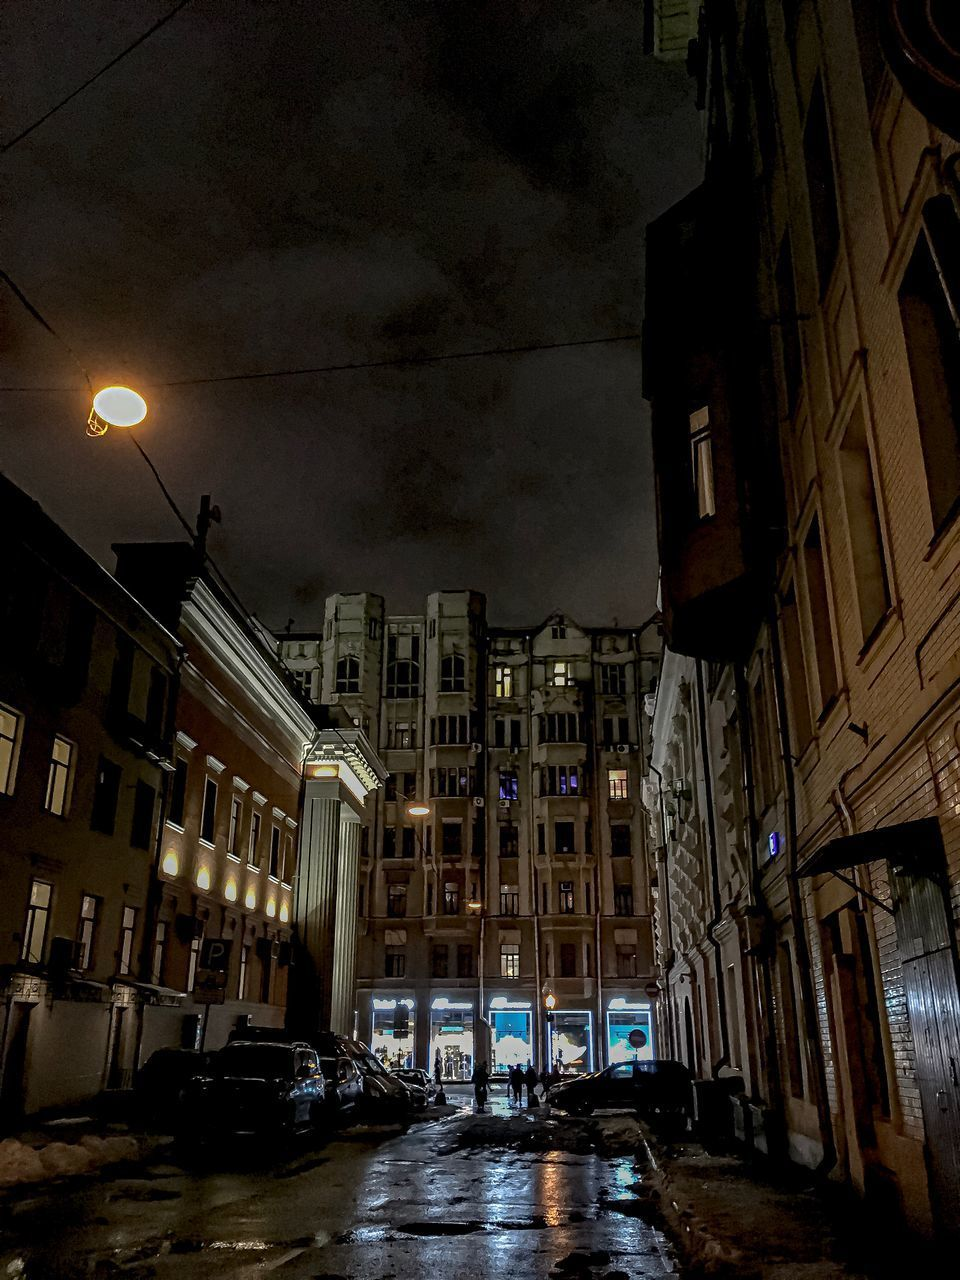 building exterior, architecture, built structure, car, motor vehicle, city, mode of transportation, illuminated, transportation, street, land vehicle, building, night, cloud - sky, residential district, no people, sky, street light, nature, outdoors